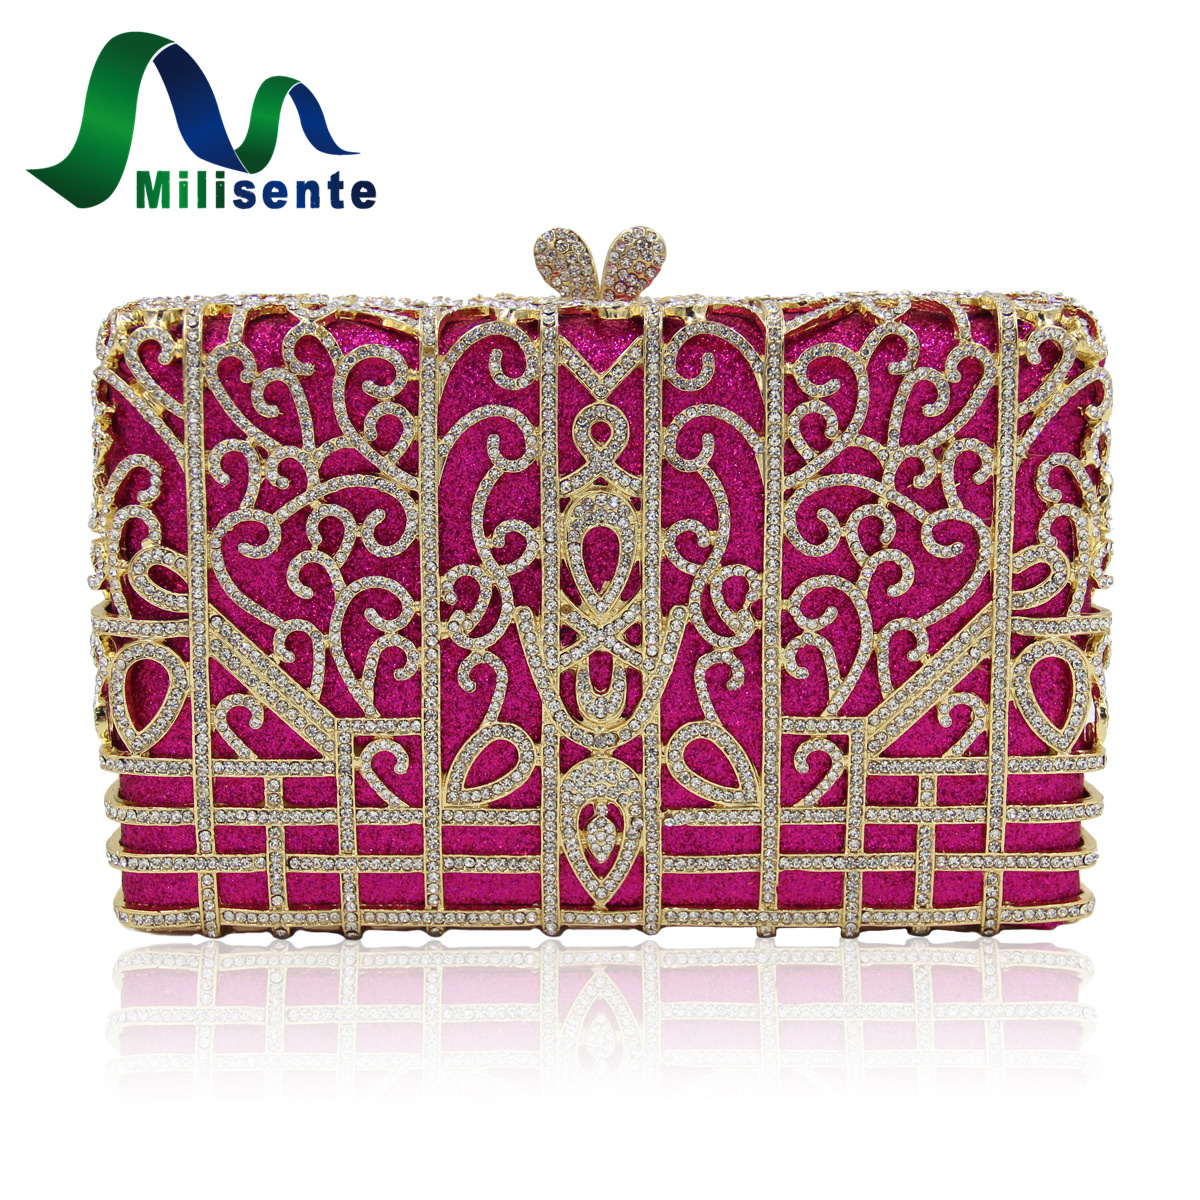 Milisente Women Hot-pink Evening Clutch Bag Ladies New Design Crystal Clutches Bags Female Fashion Party Purses With Chain free shipping a15 36 sky blue color fashion top crystal stones ring clutches bags for ladies nice party bag